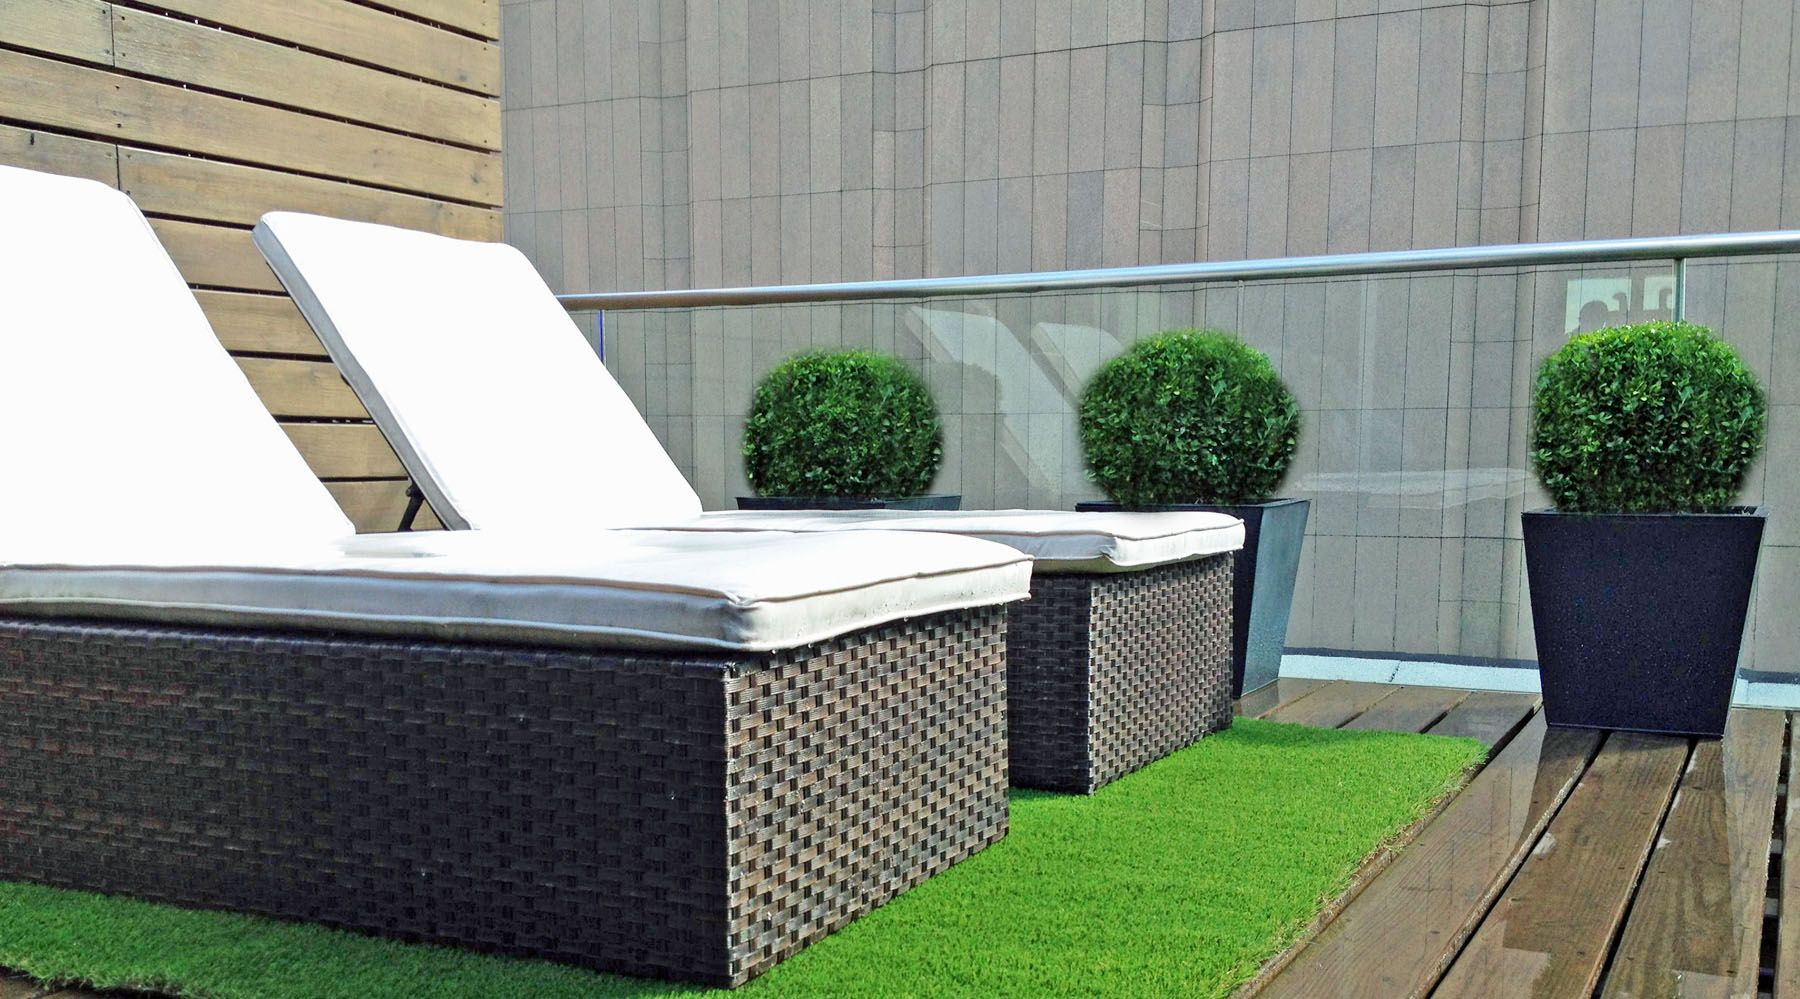 Grass On A Roof Artifical Turf Has Come A Long Way And Looks Surprisingly Realistic These Days Rea Roof Garden Design Rooftop Terrace Design Terrace Design